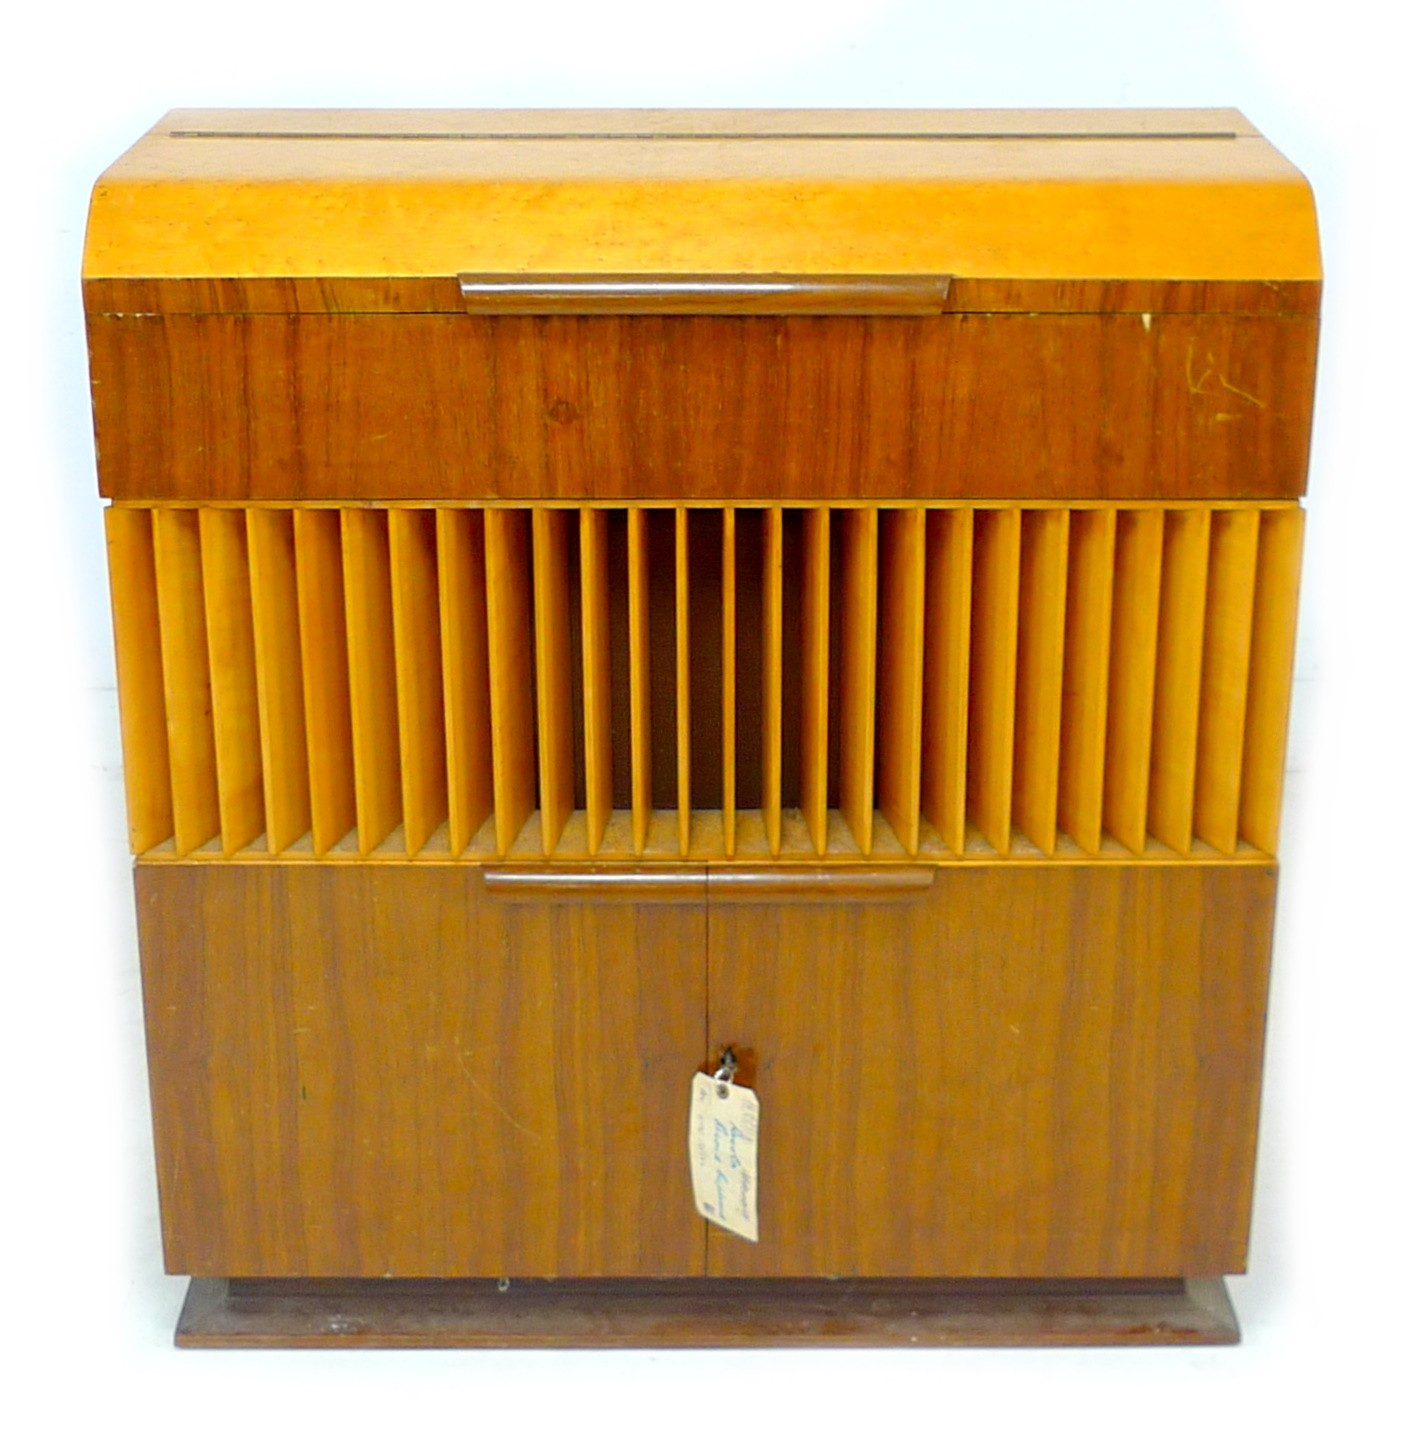 A vintage 'Decola' radiogram, by The Decca Record Company Limited, Rd. Desn. 844055, 'Decola' No. - Image 4 of 9